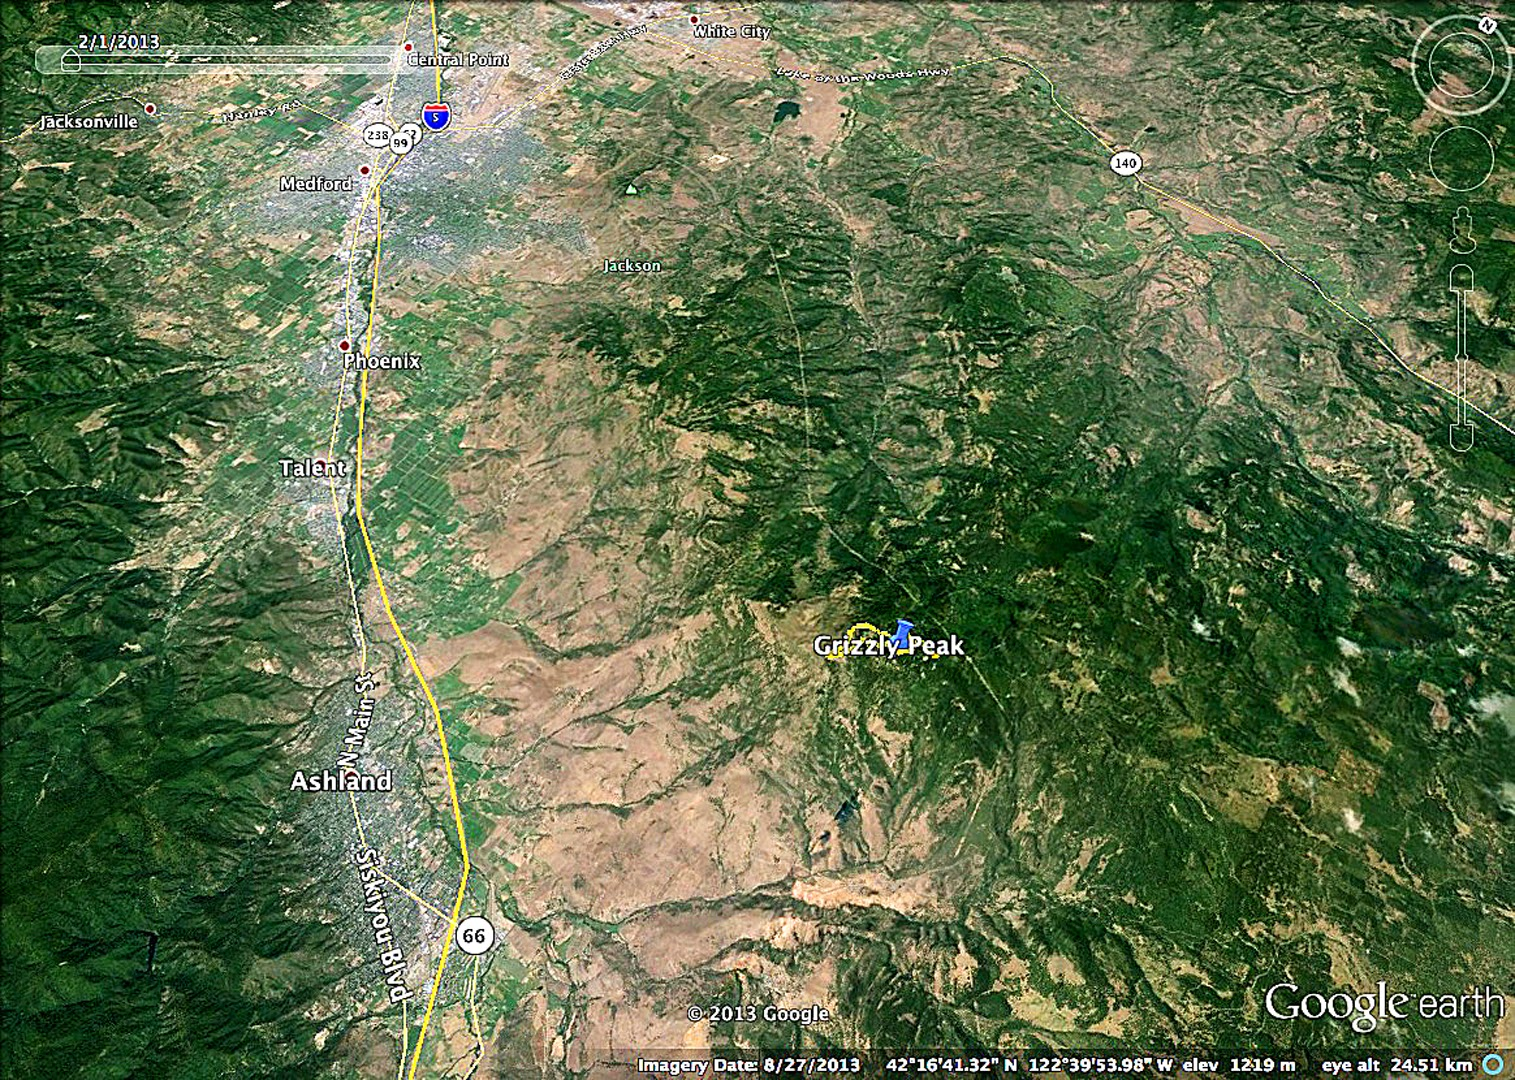 mt ashland to the west the klamath basin to the east mt shasta to the south and mt mcloughlin to the north this google earth map shows its